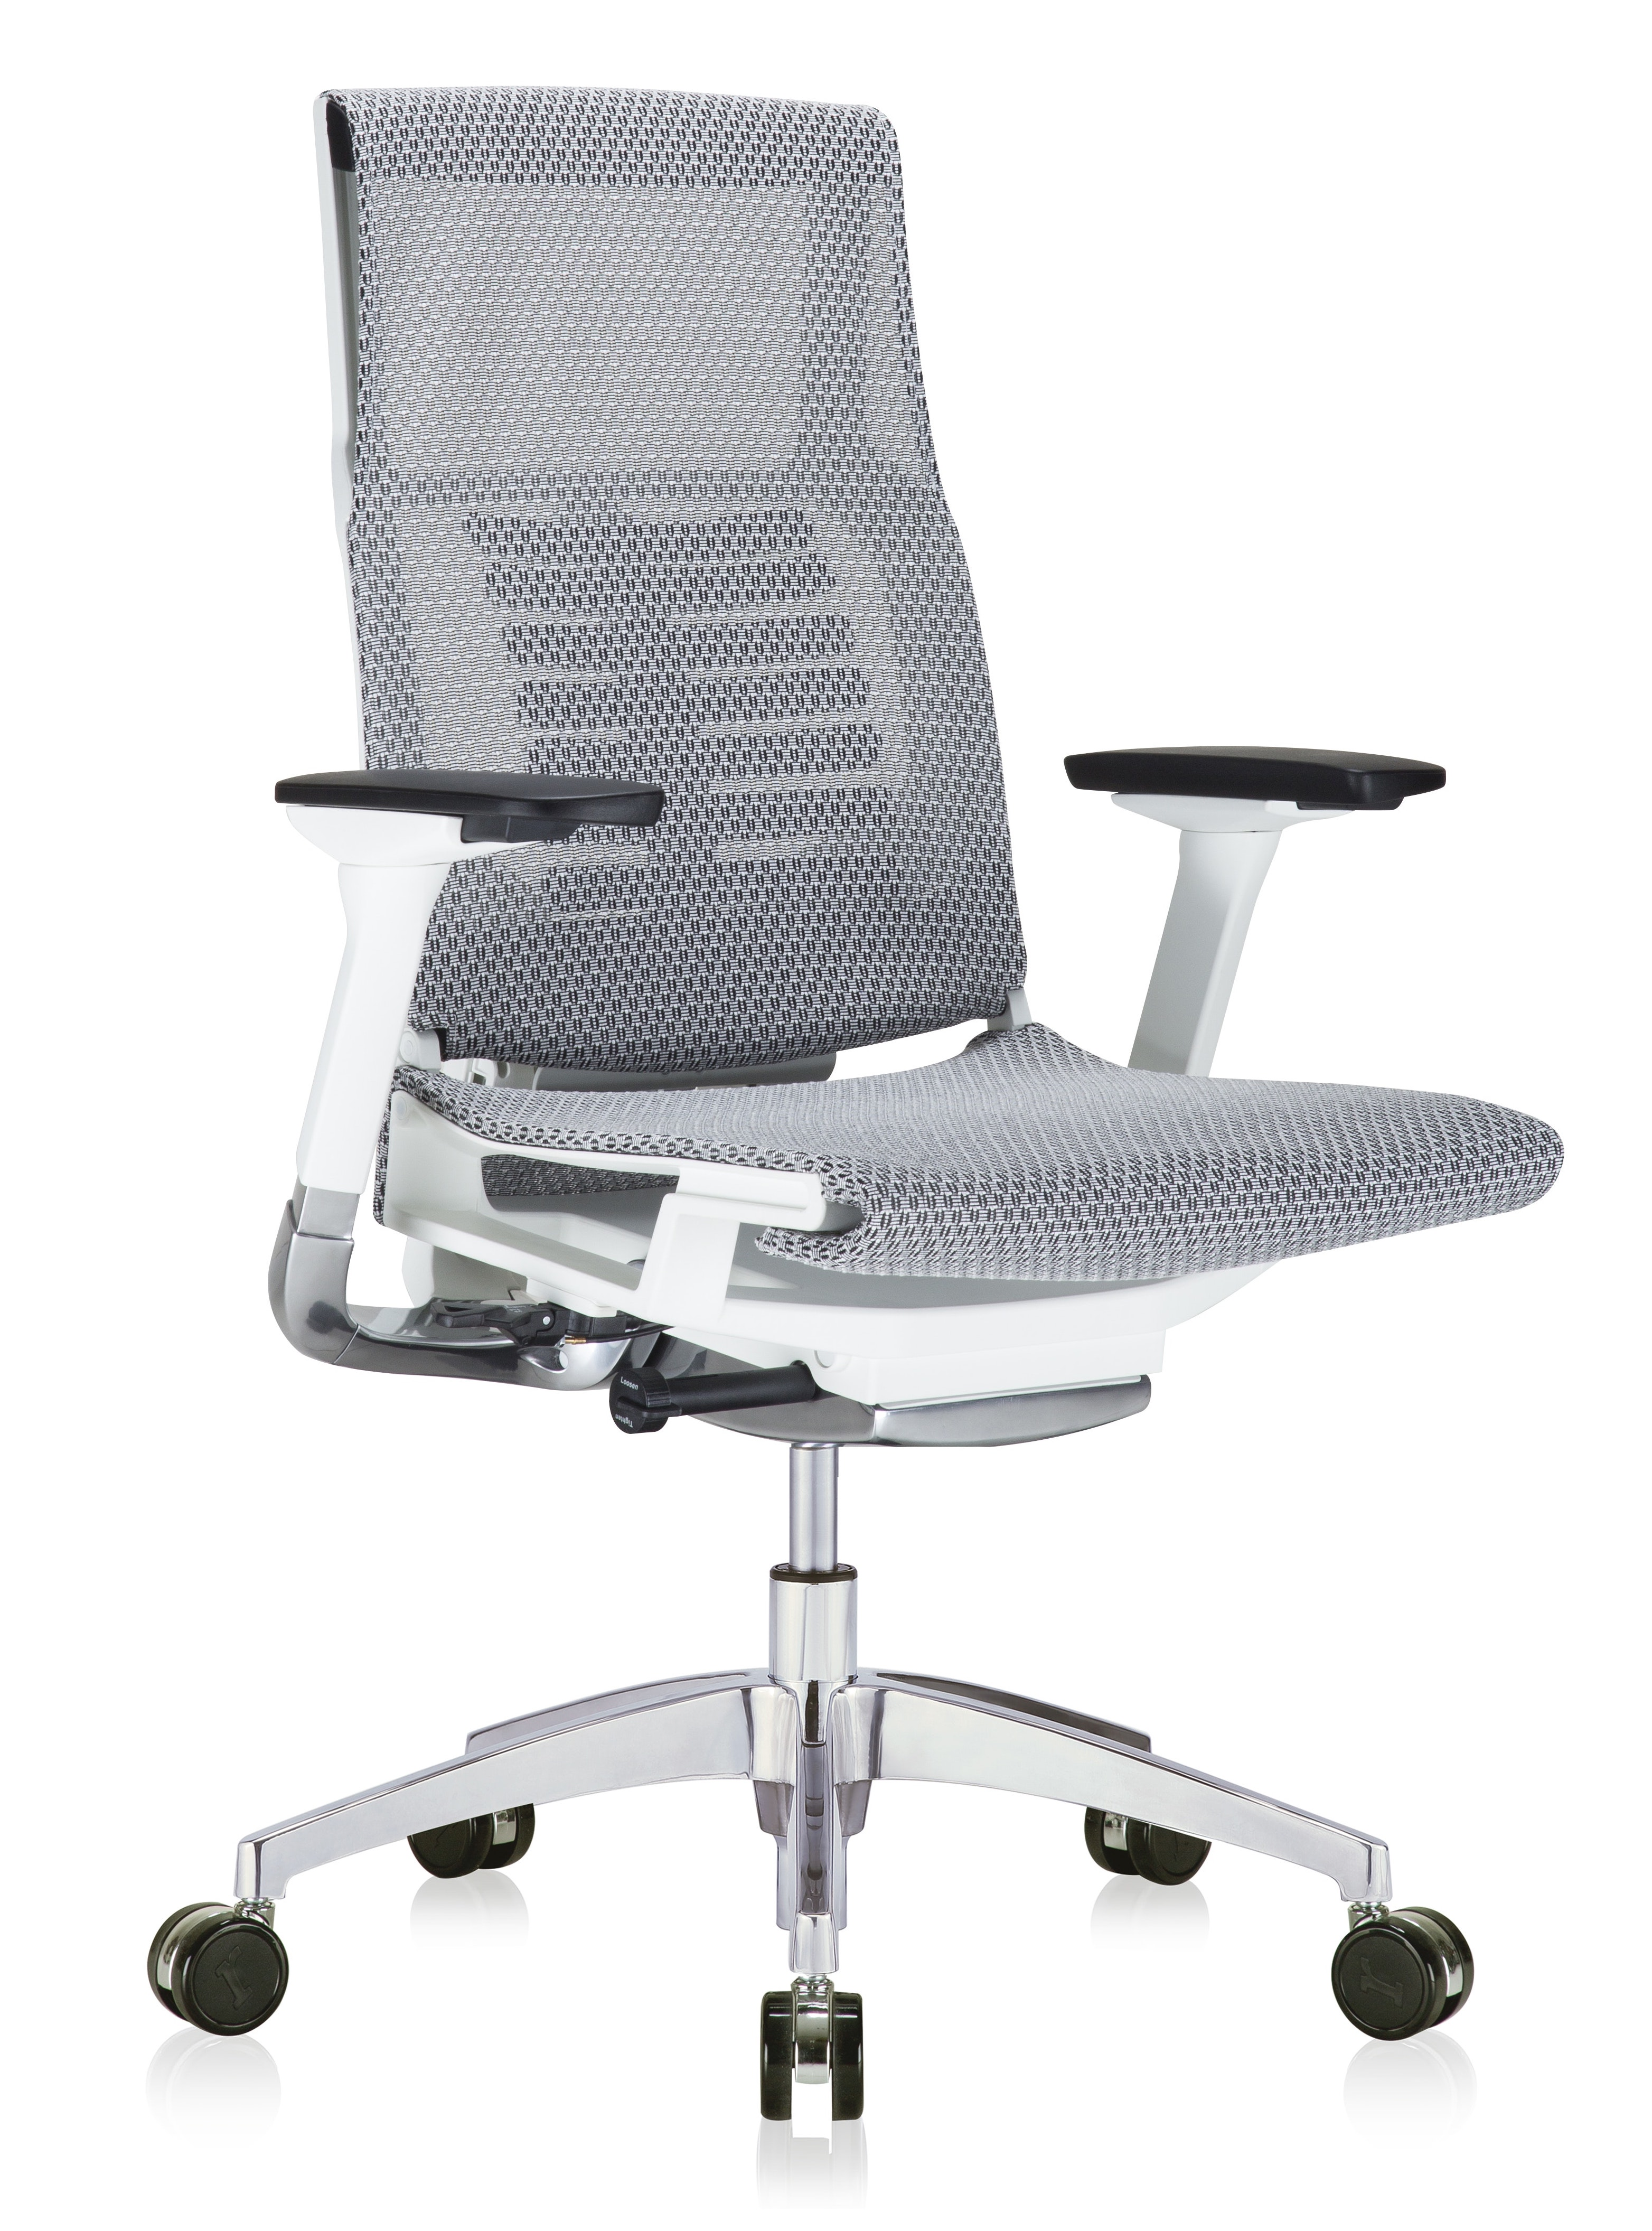 powerfit white frame office chair with grey mesh seat and back